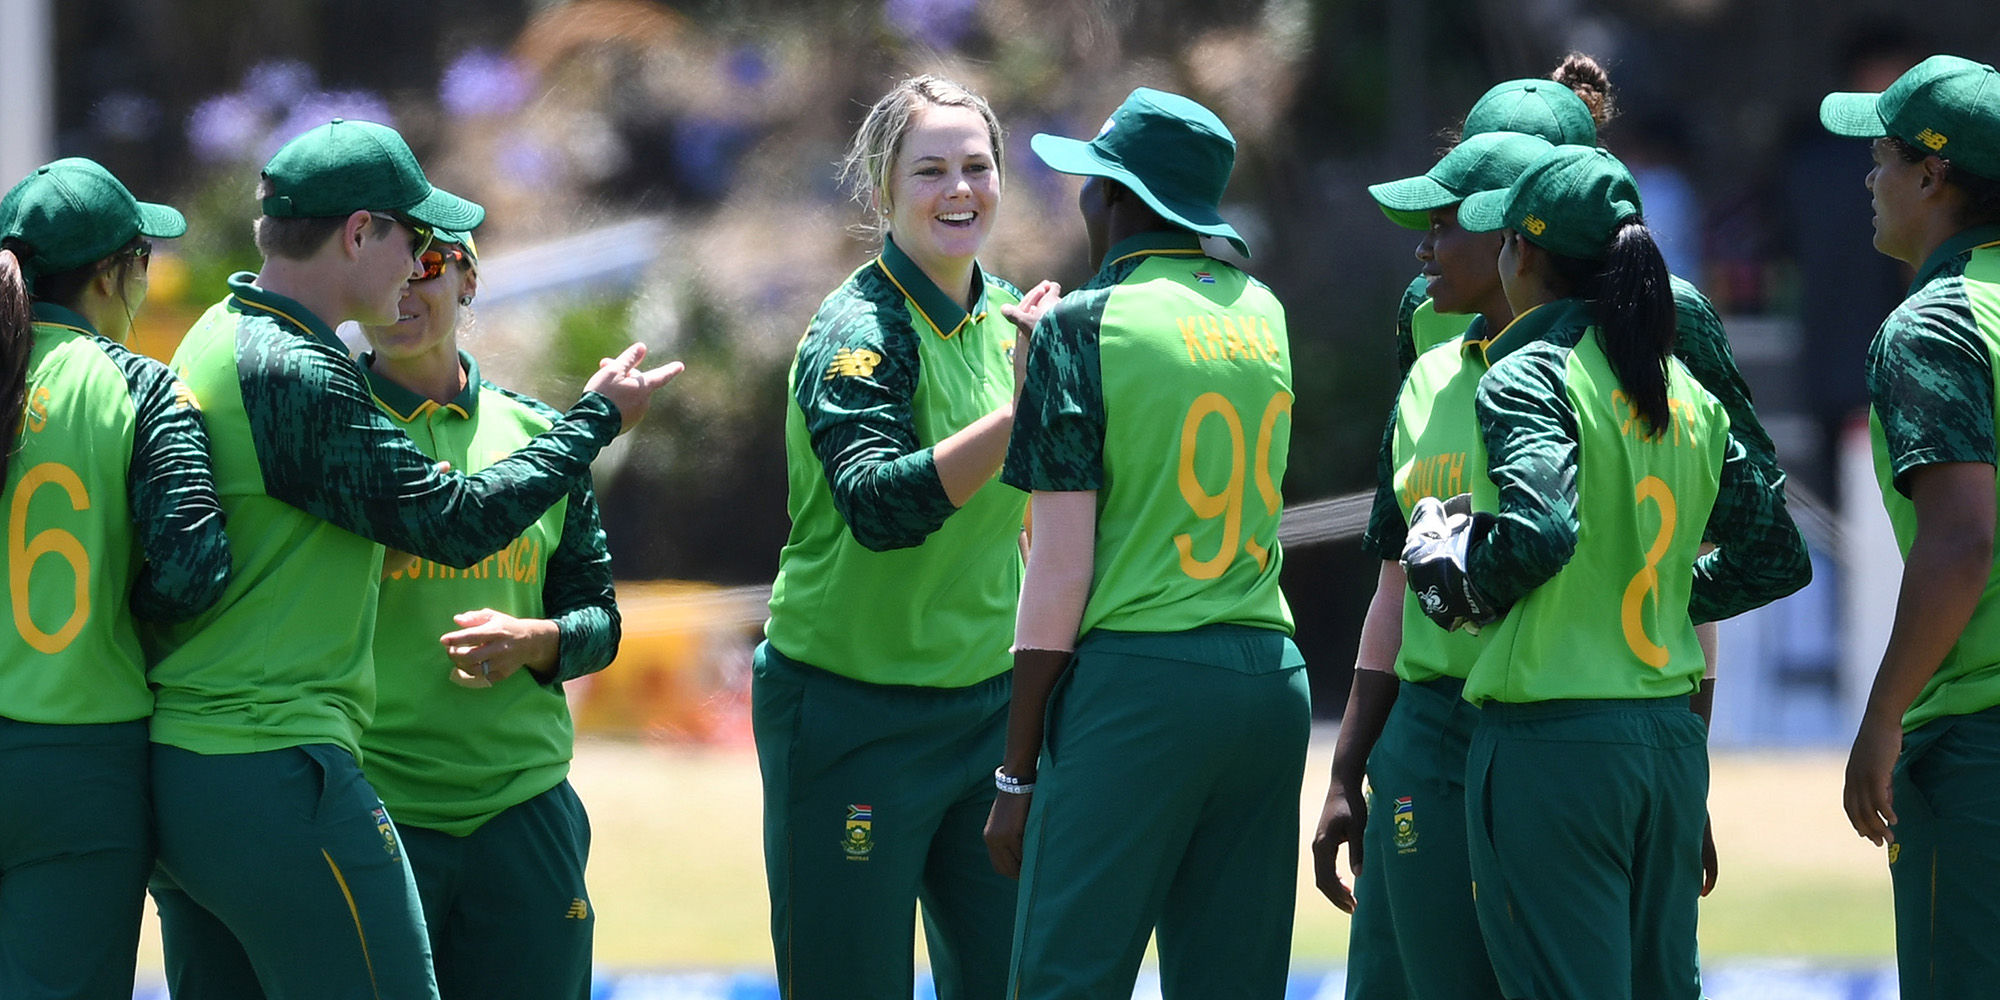 CRICKET: Proteas in with fighting chance at Women's T20 World Cup